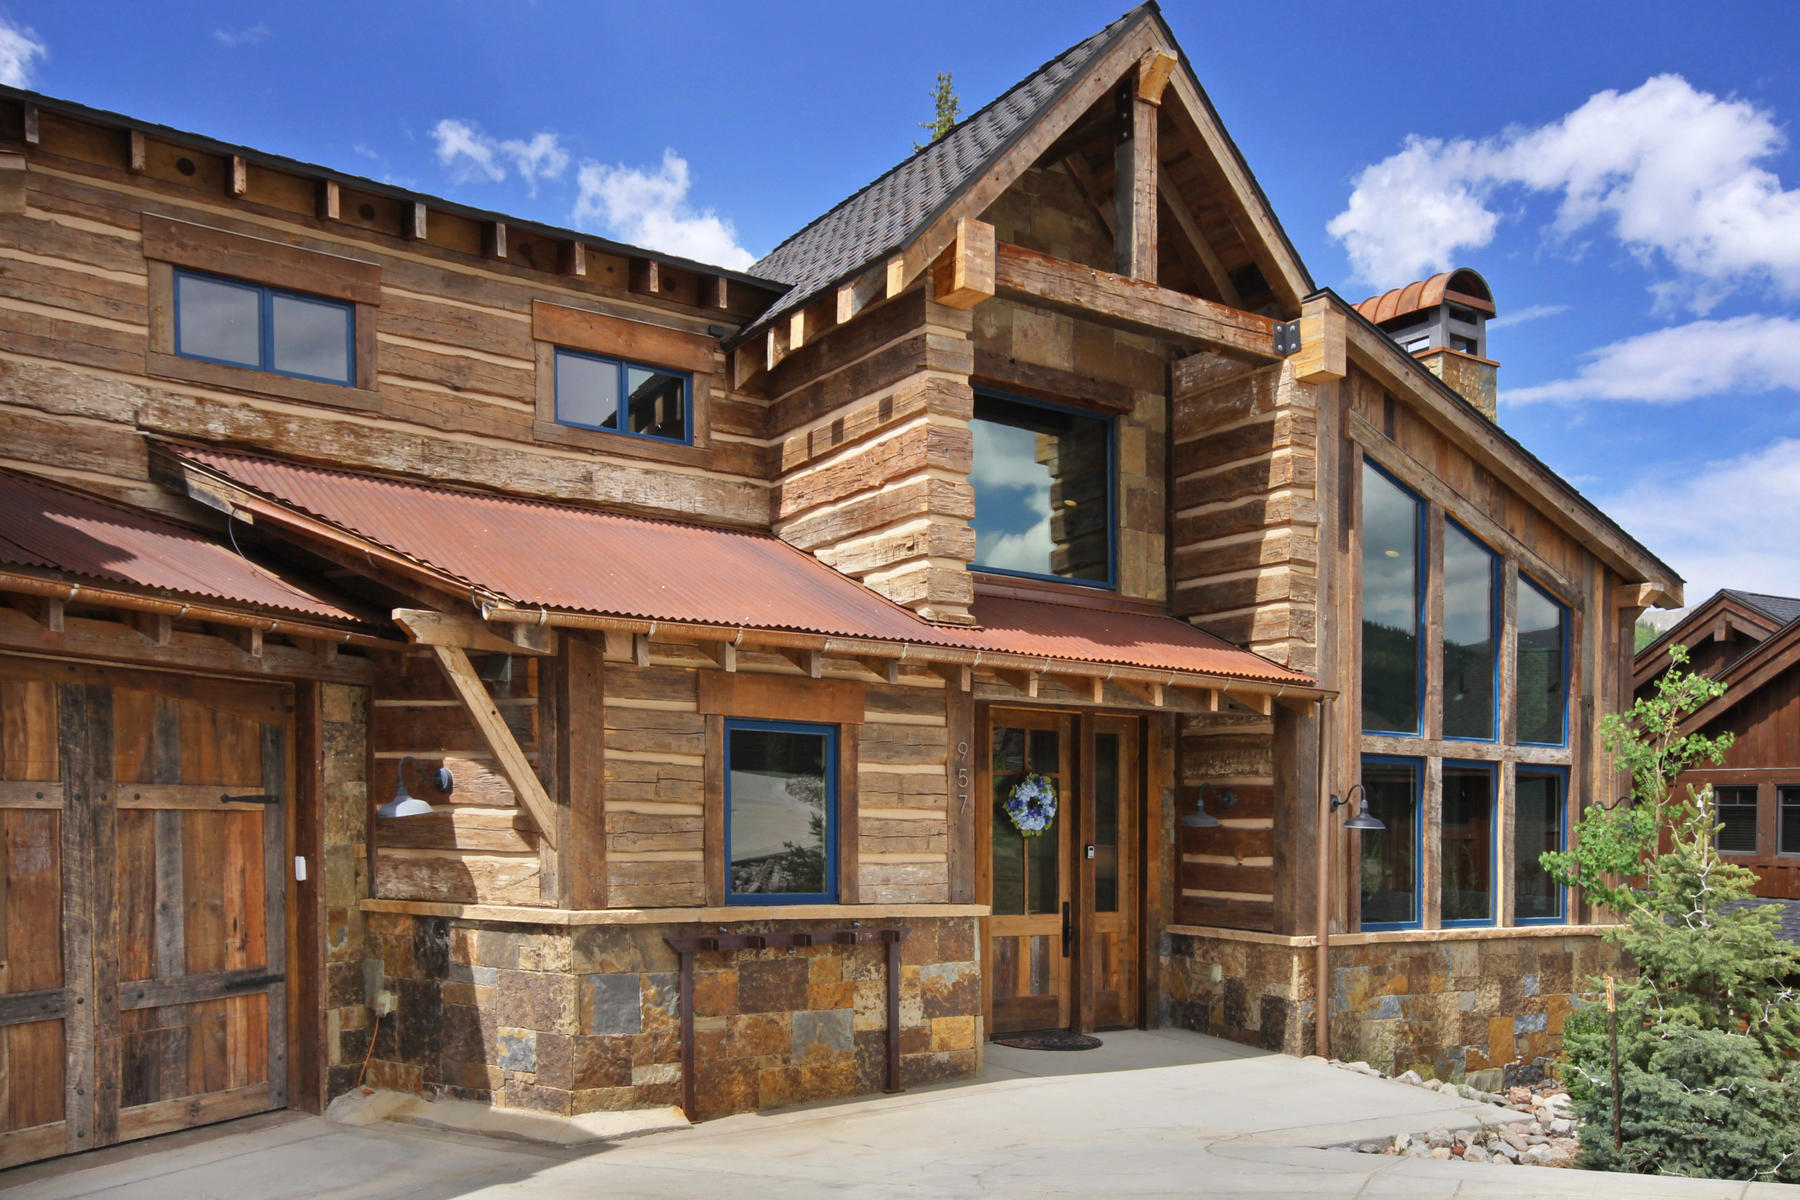 Single Family Home for Active at The Timbers at Copper Mountain 957 Beeler Place Copper Mountain, Colorado 80443 United States